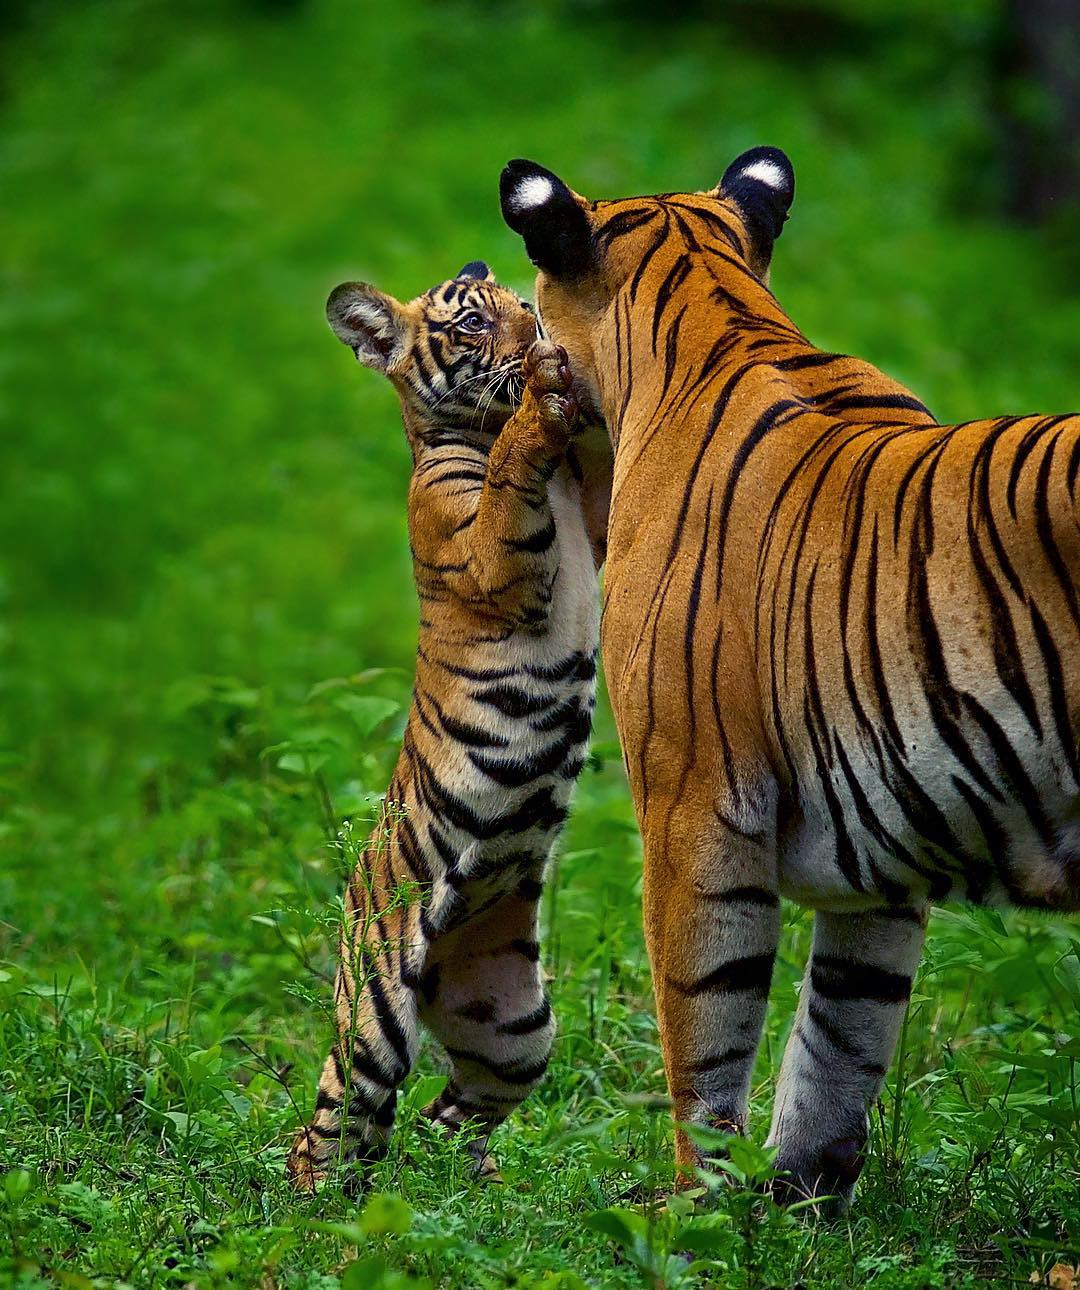 A tiger cub on its hind legs with its face close to the face of its mother.